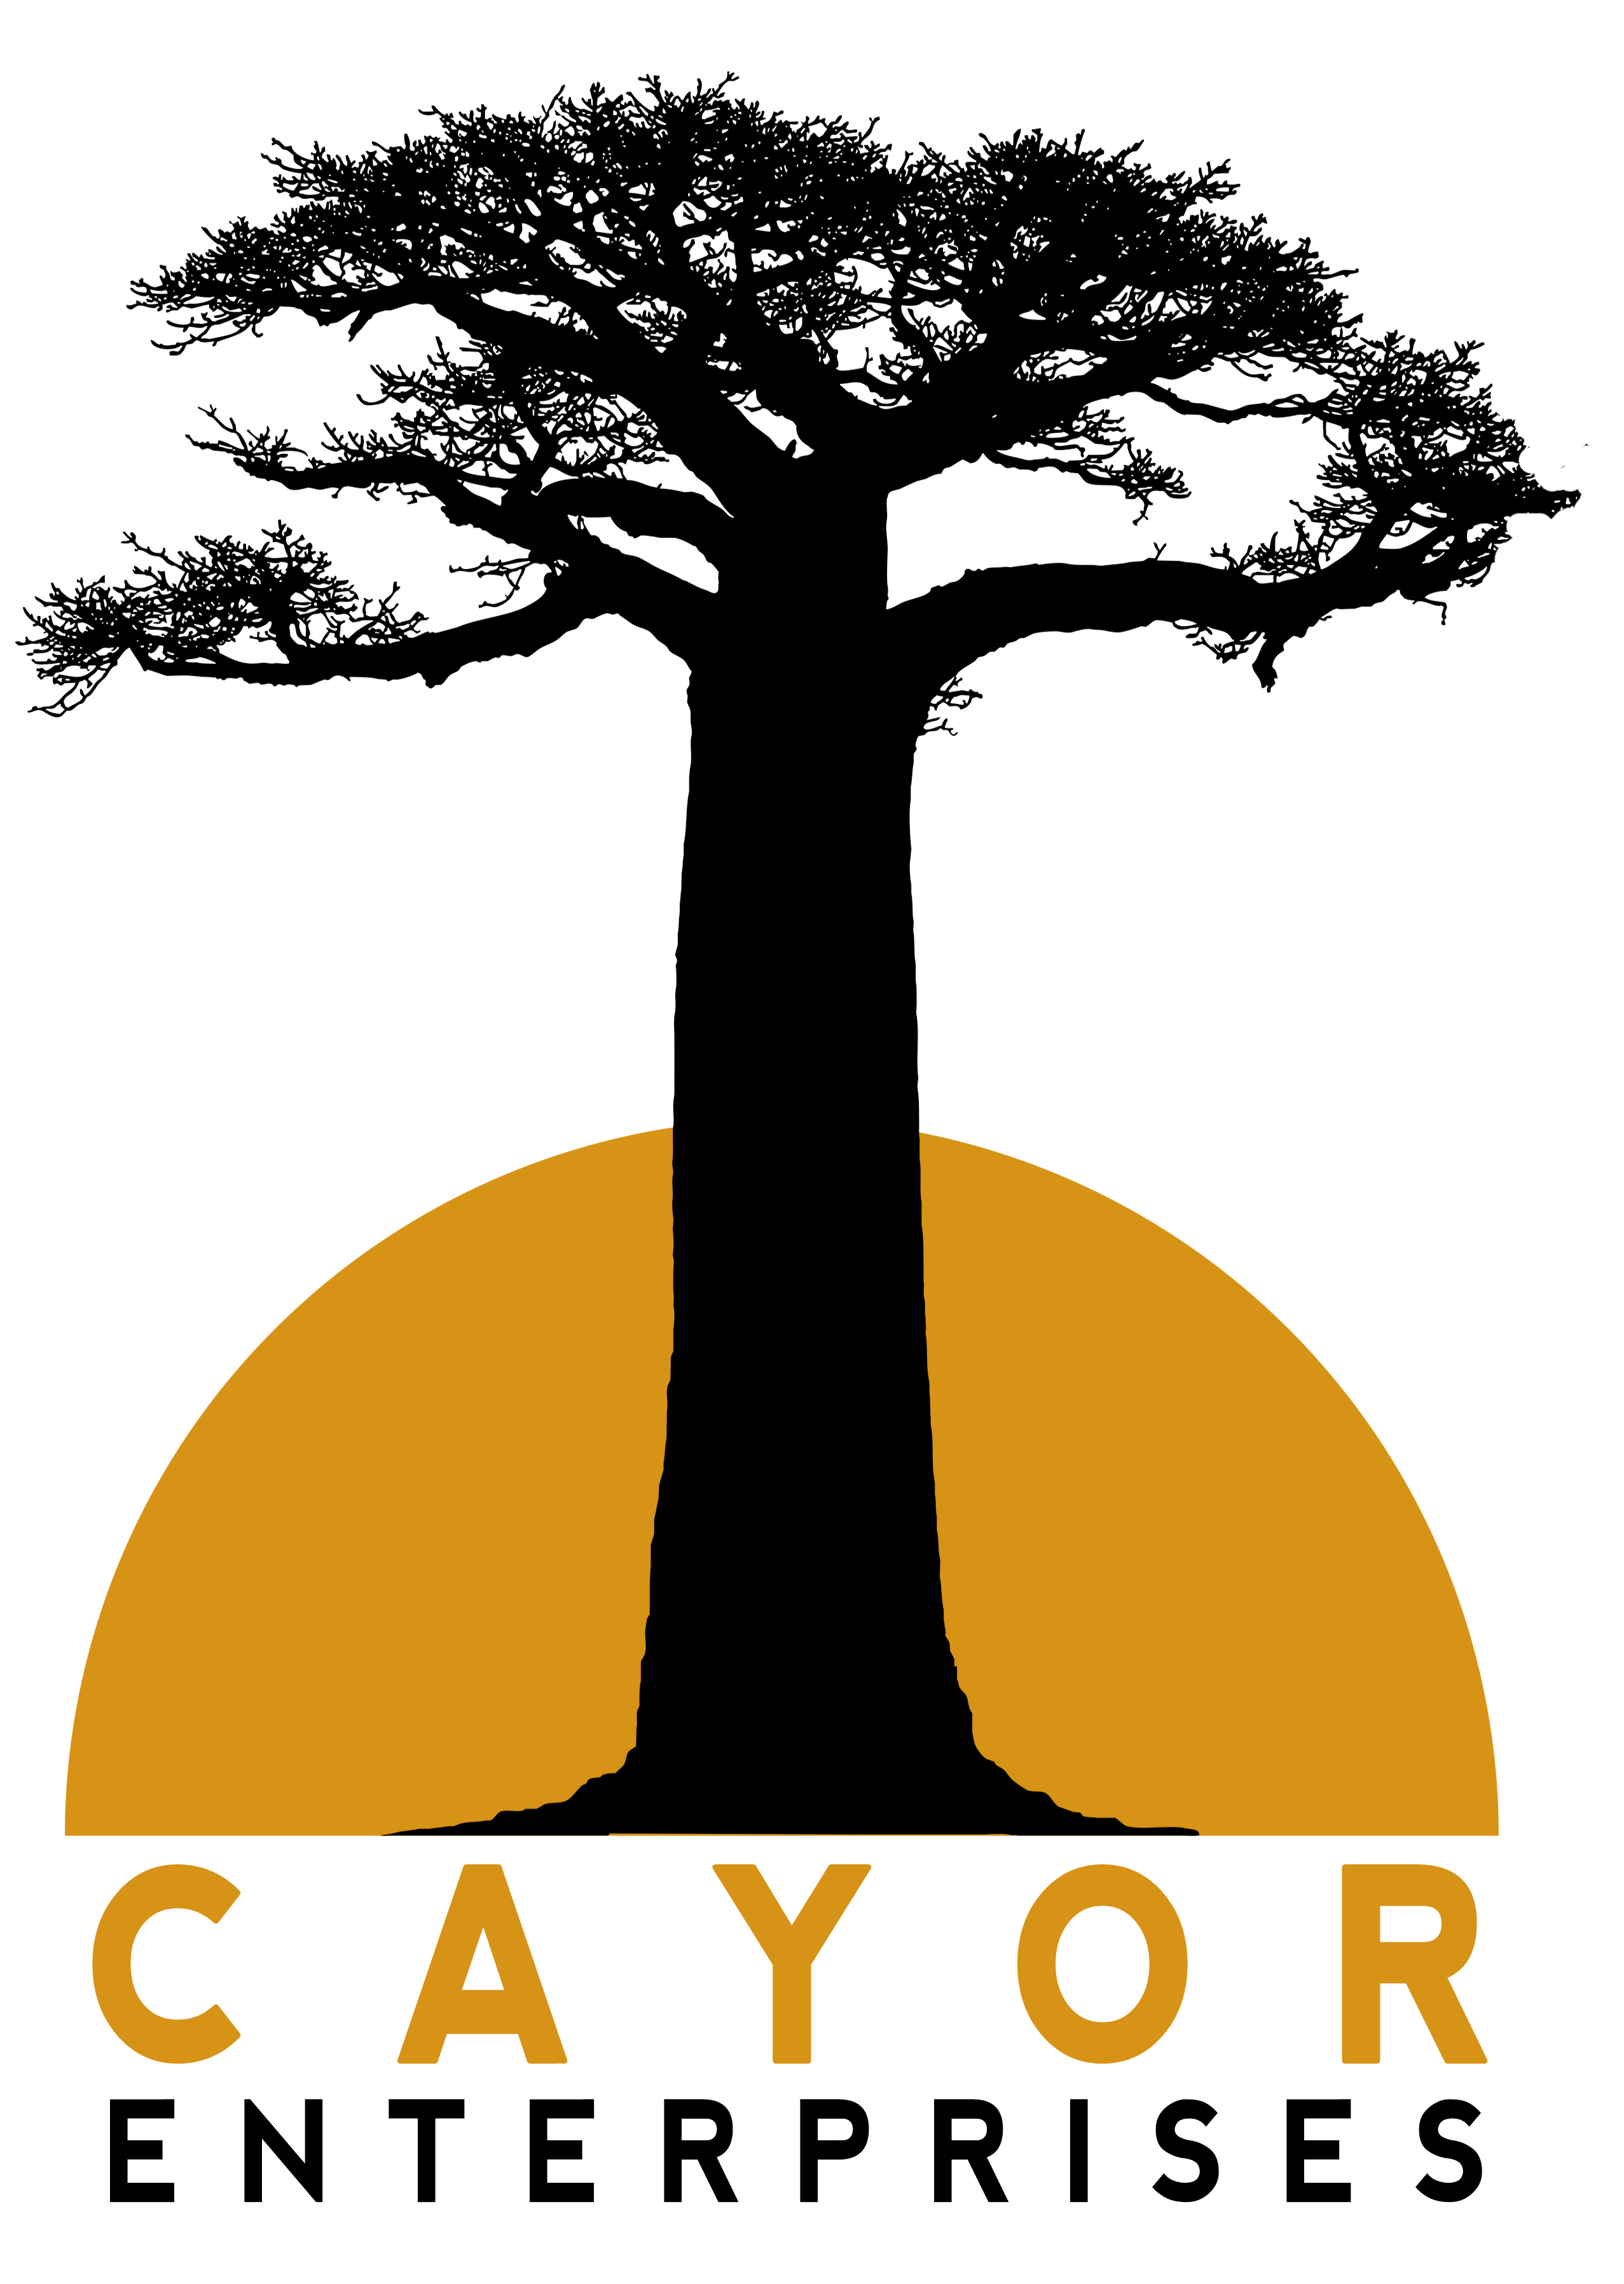 Cayor Enterprises